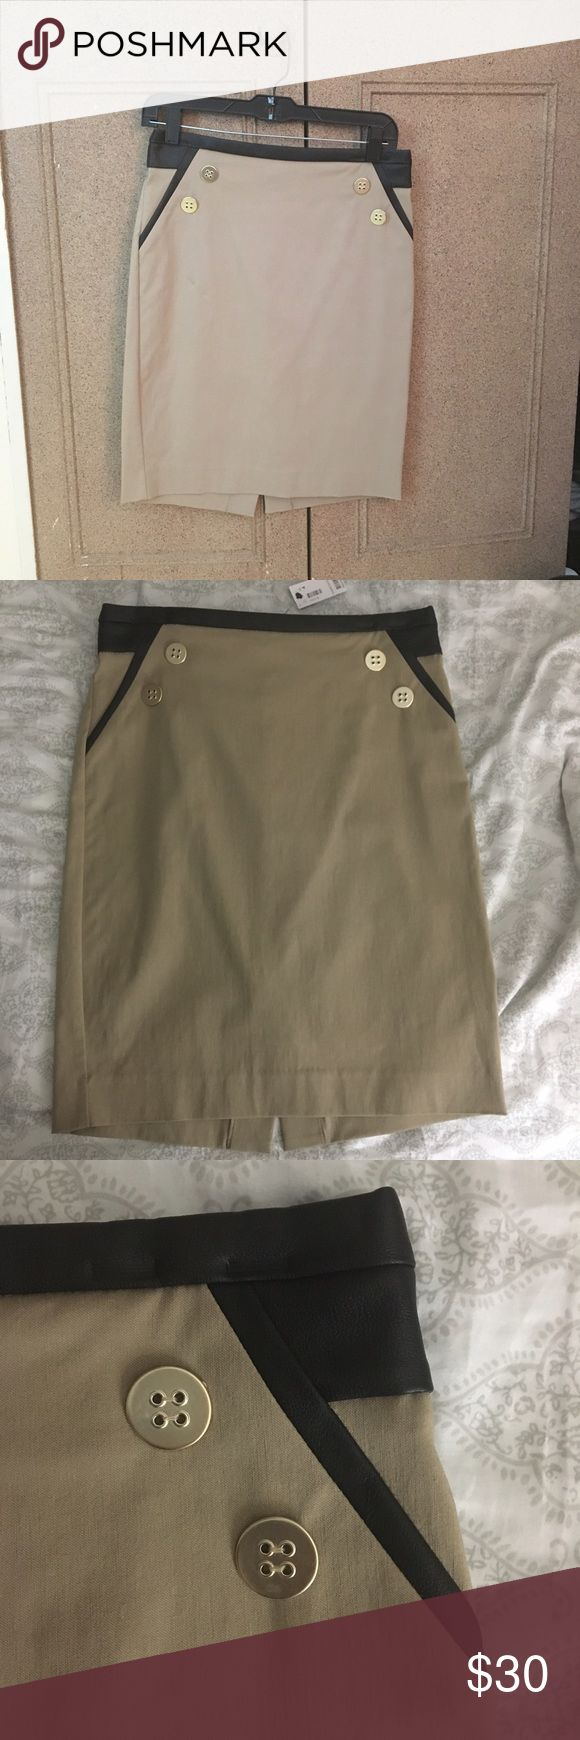 The Limited Pencil Skirt Tan pencil skirt with faux leather trim. Never worn. The Limited Skirts Pencil